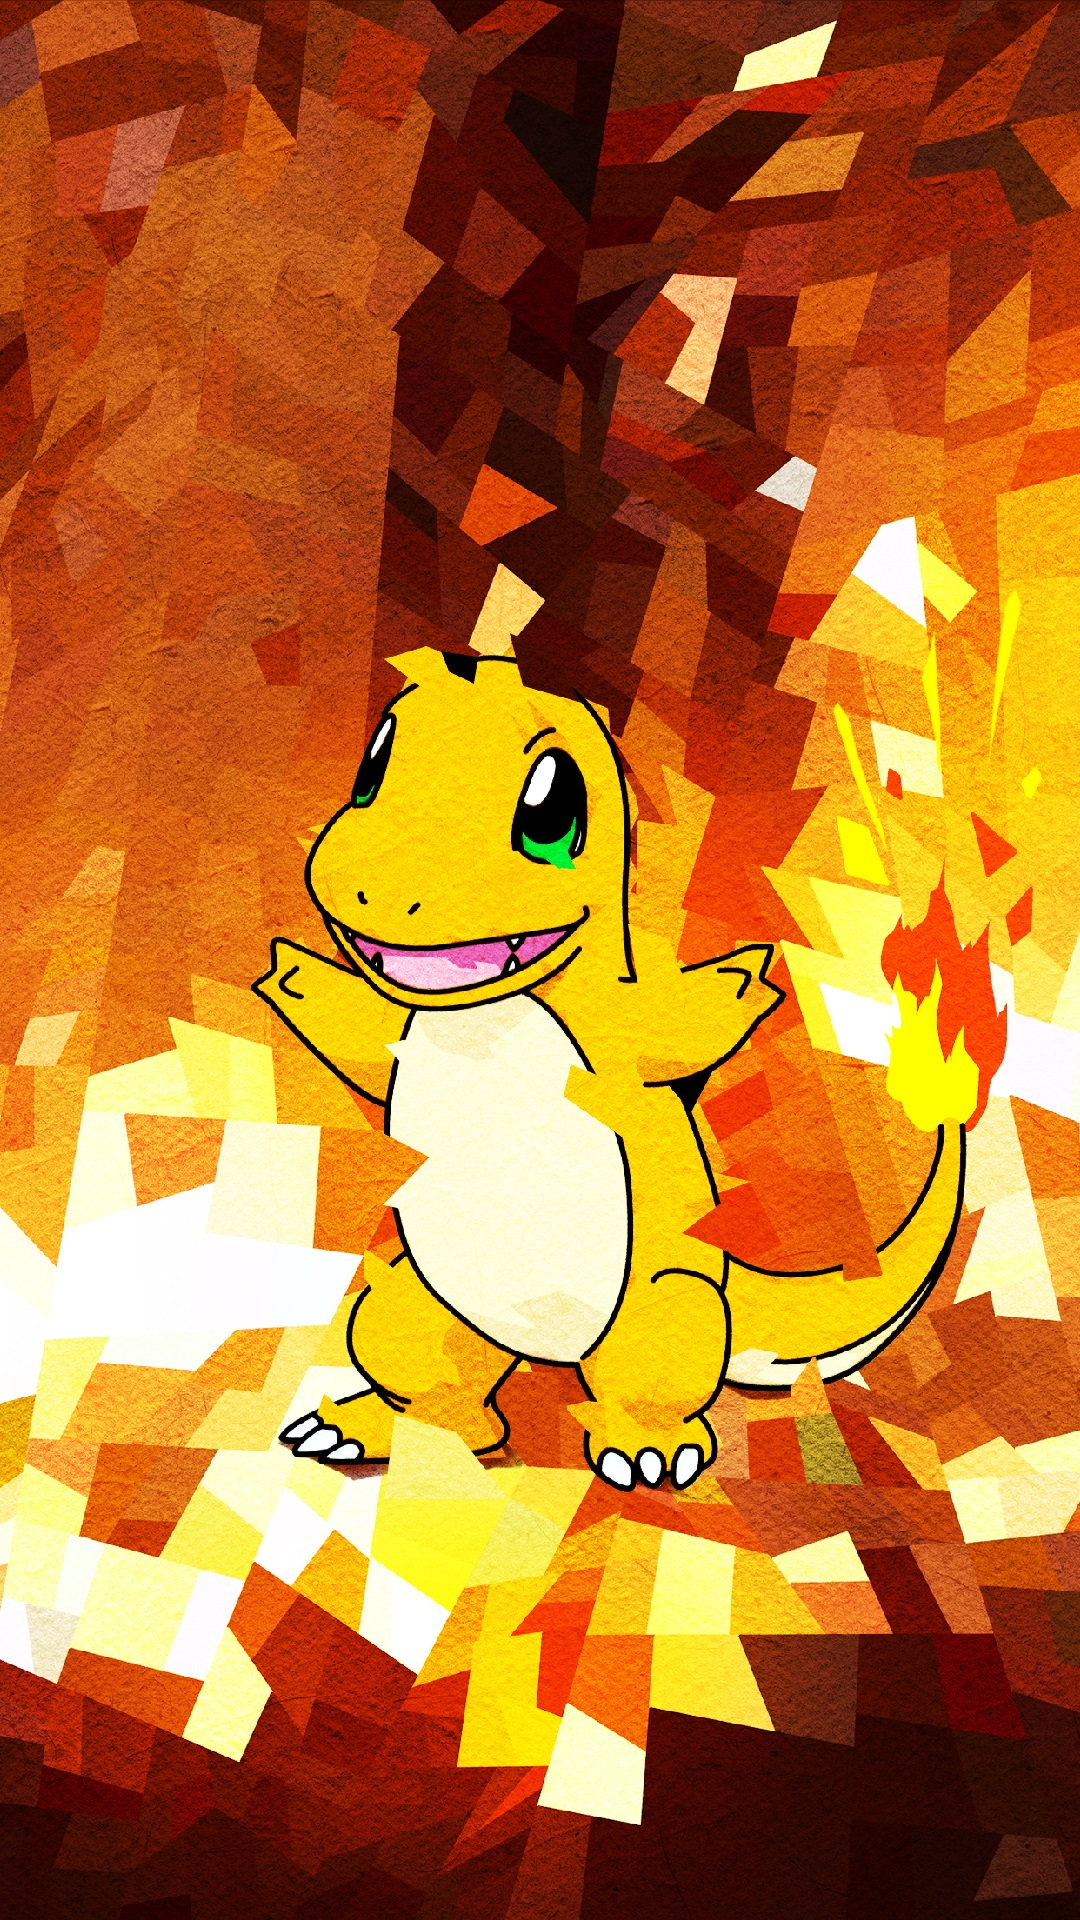 Pokemon Go Charmander fire Iphone hd wallpaper - Wallect